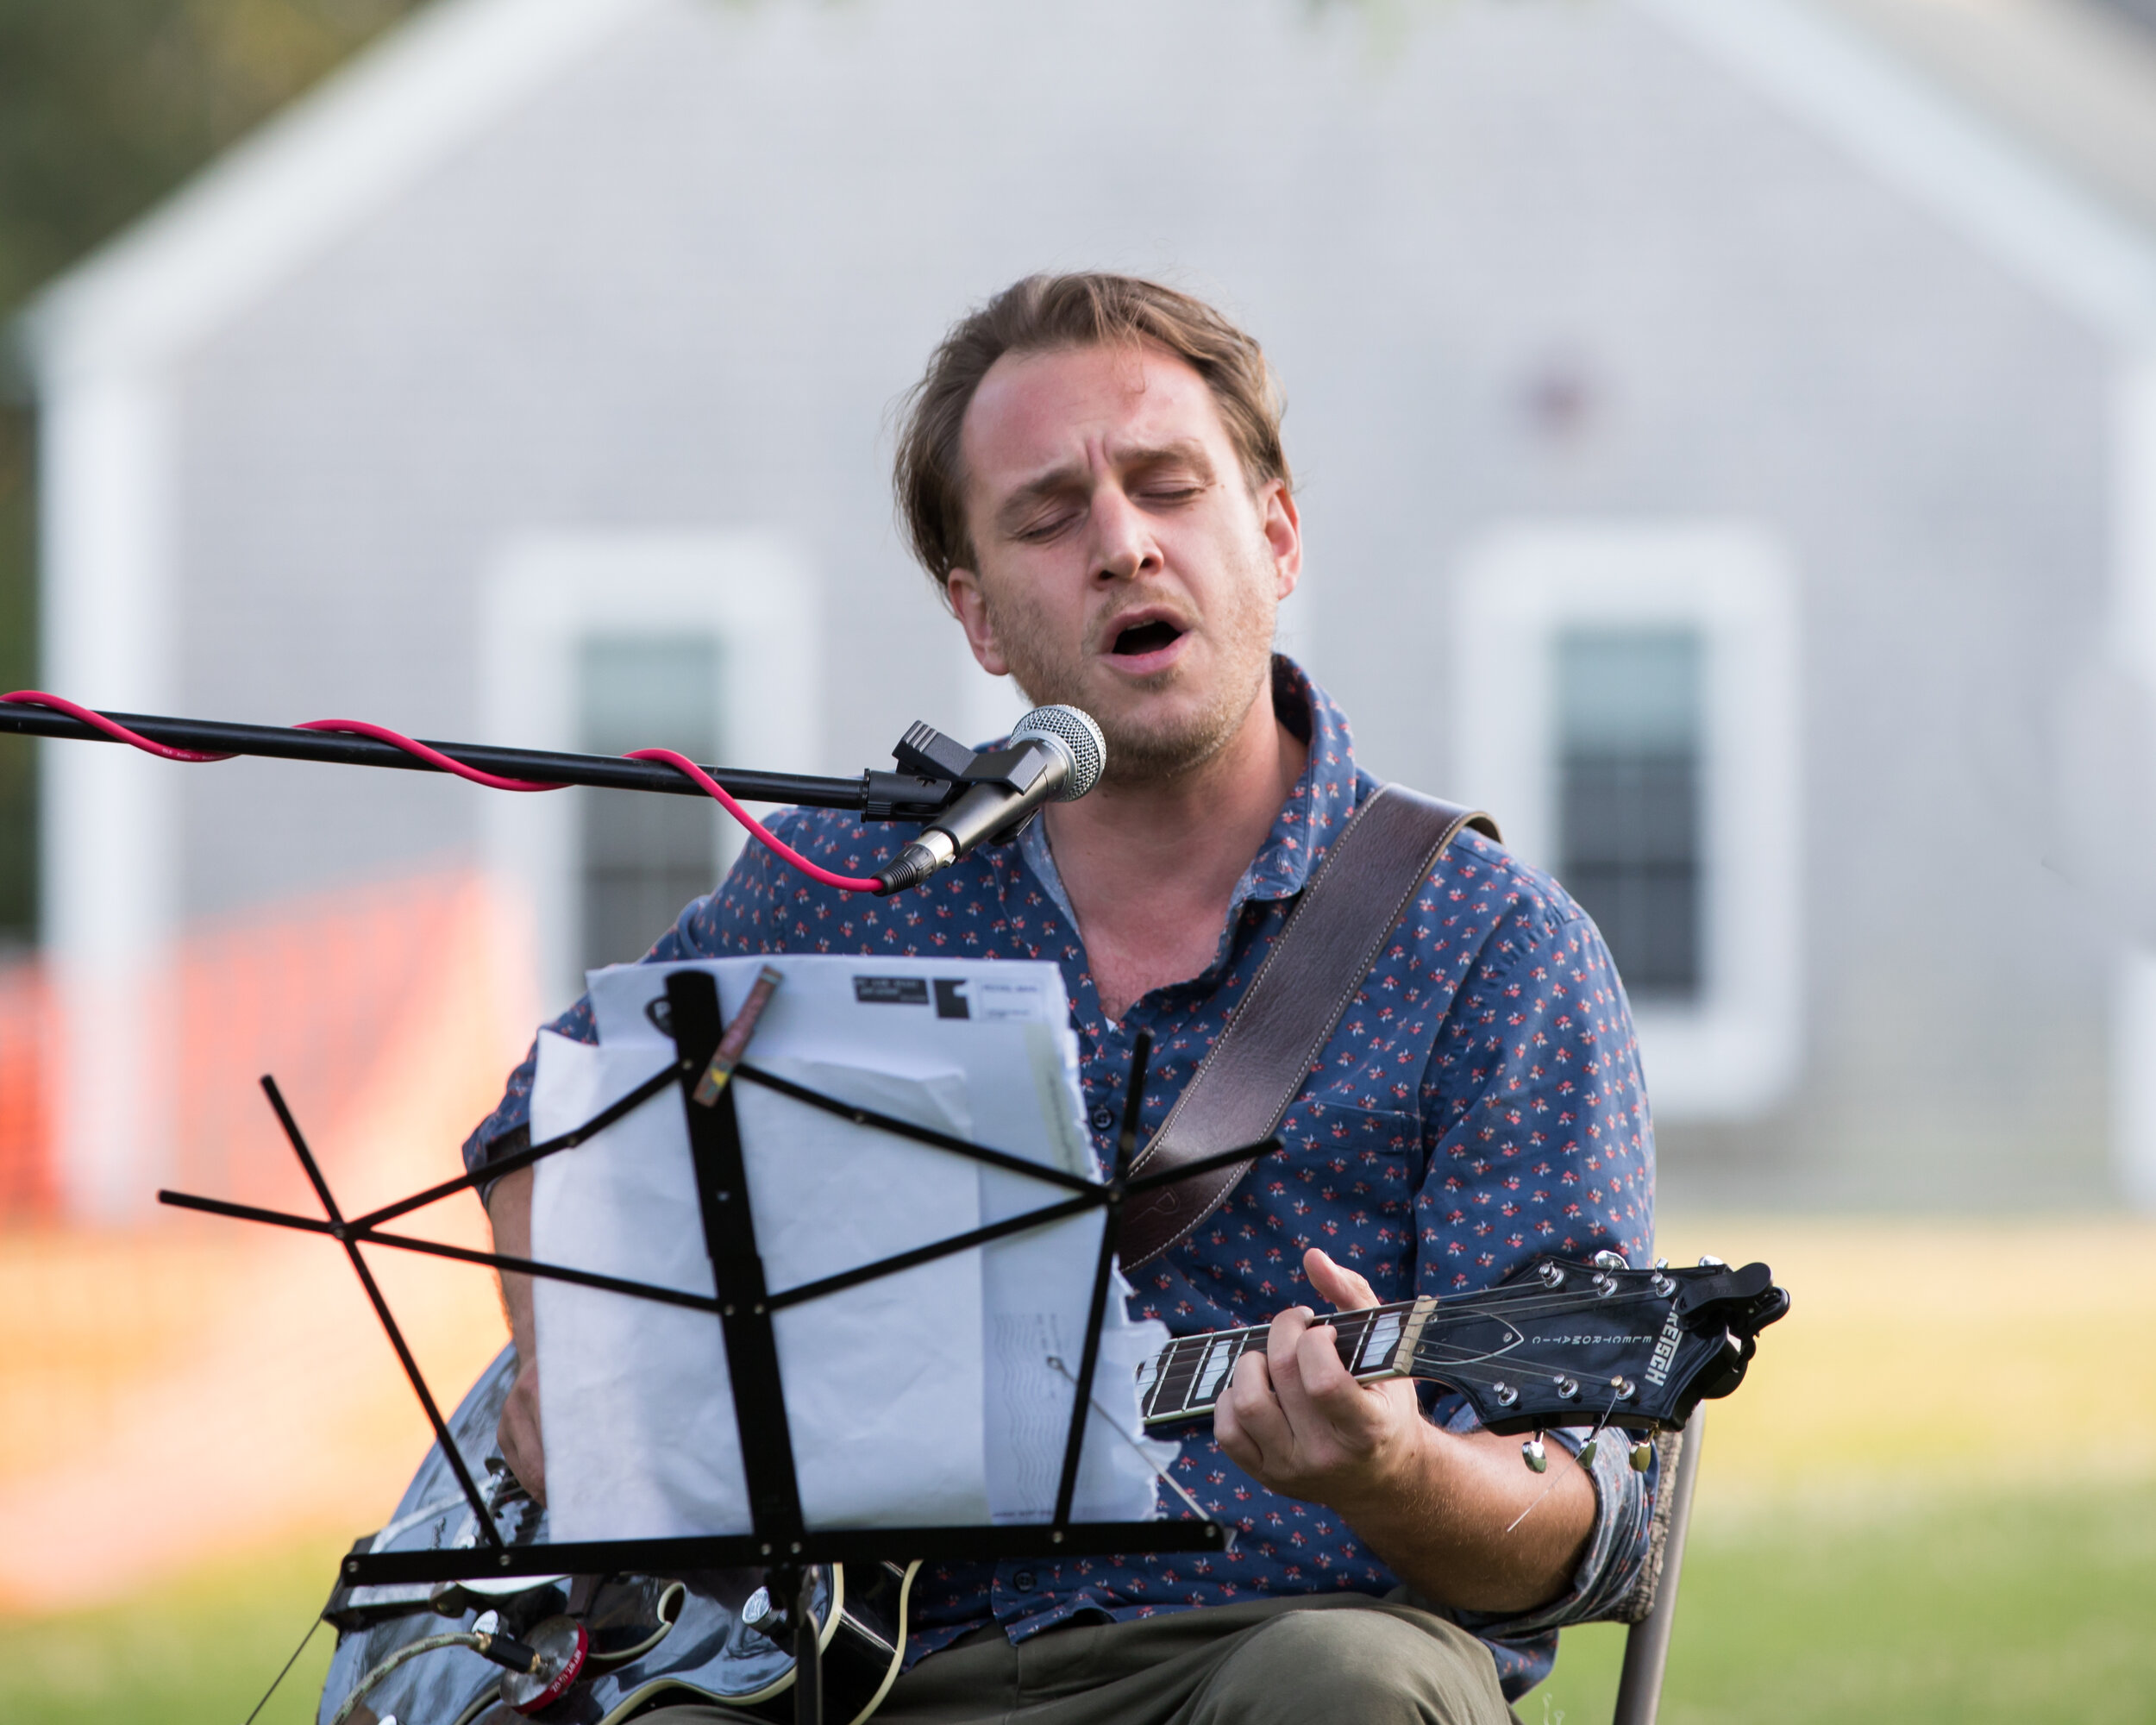 Willy Mason performs on the lawn of the Chilmark Community Center before MARIANNE & LEONARD. Photo by Maria Thibodeau.